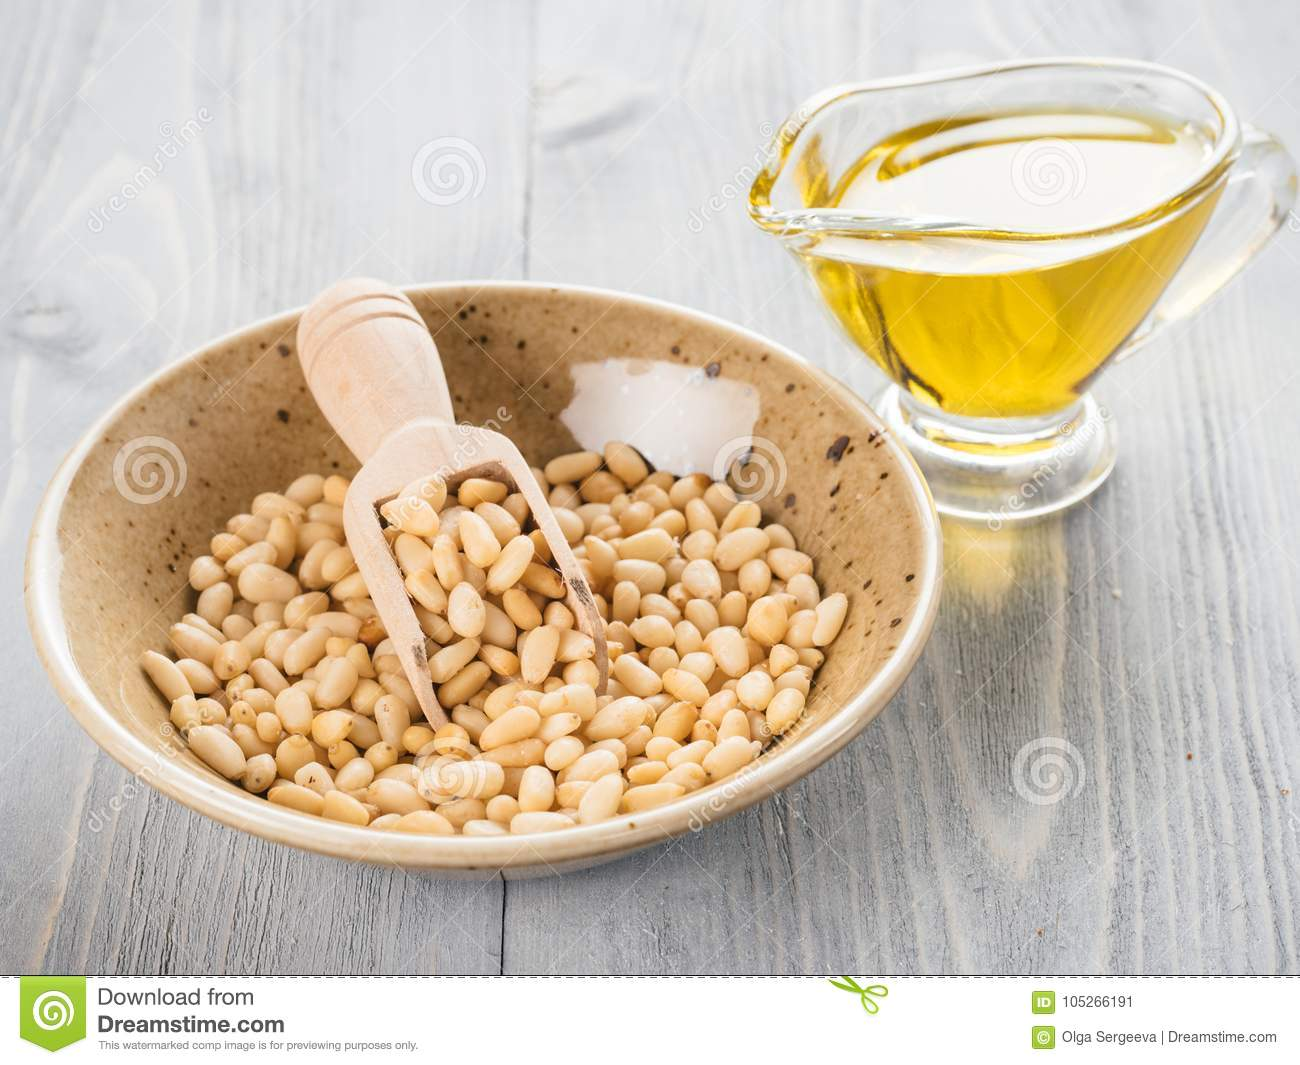 Pine nut oil and pine nuts on gray wooden background